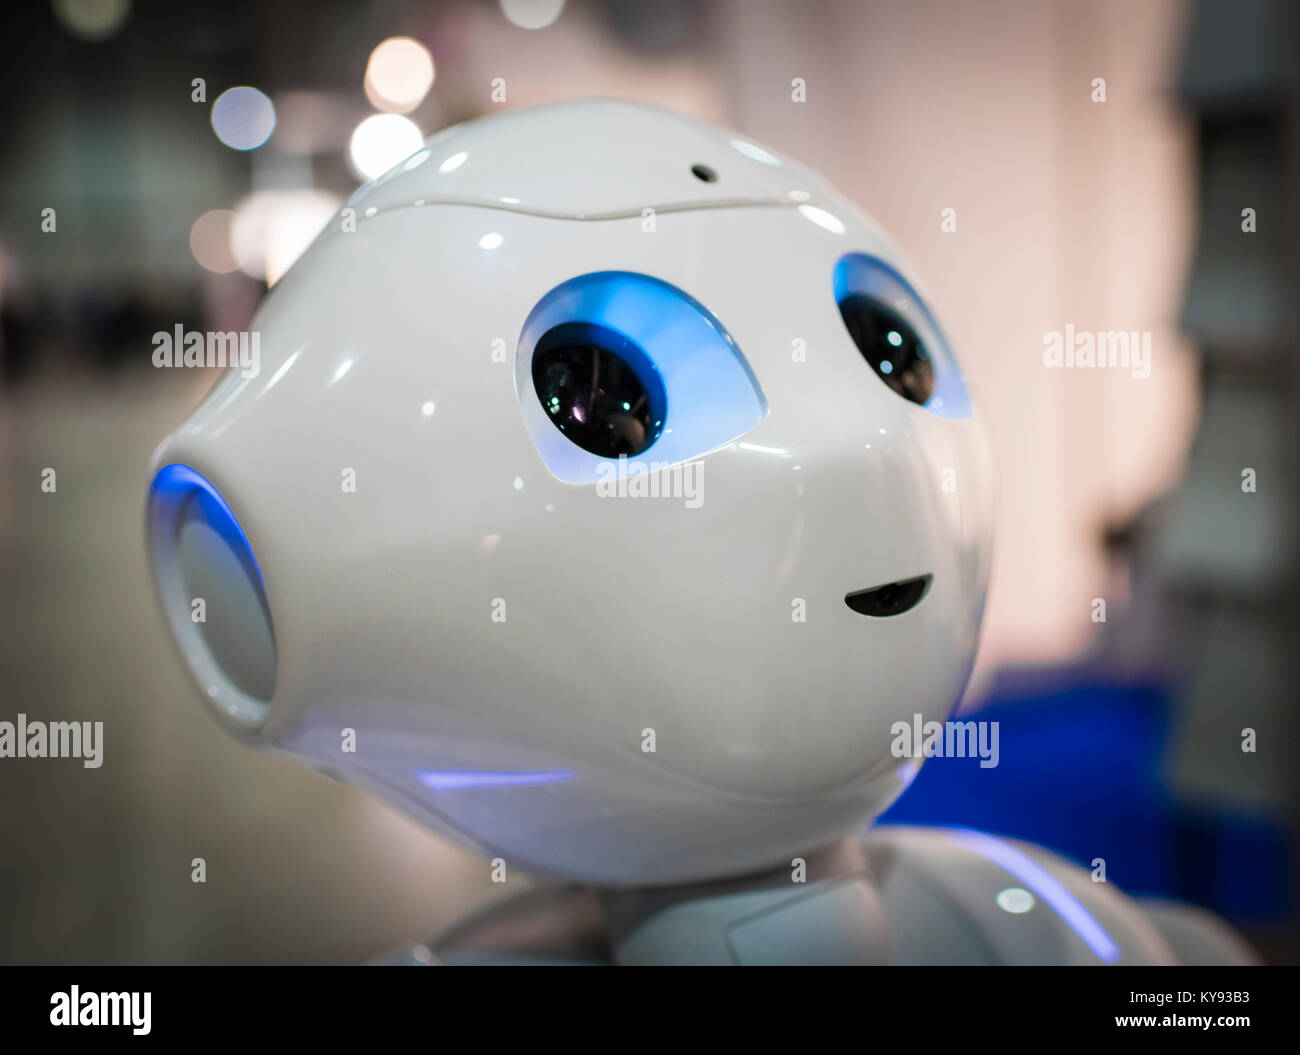 Lucerne, Switzerland - 2 Dec 2017: Humanoid robot 'Pepper', demonstrated at the Swiss Handicap fair in Lucerne, - Stock Image